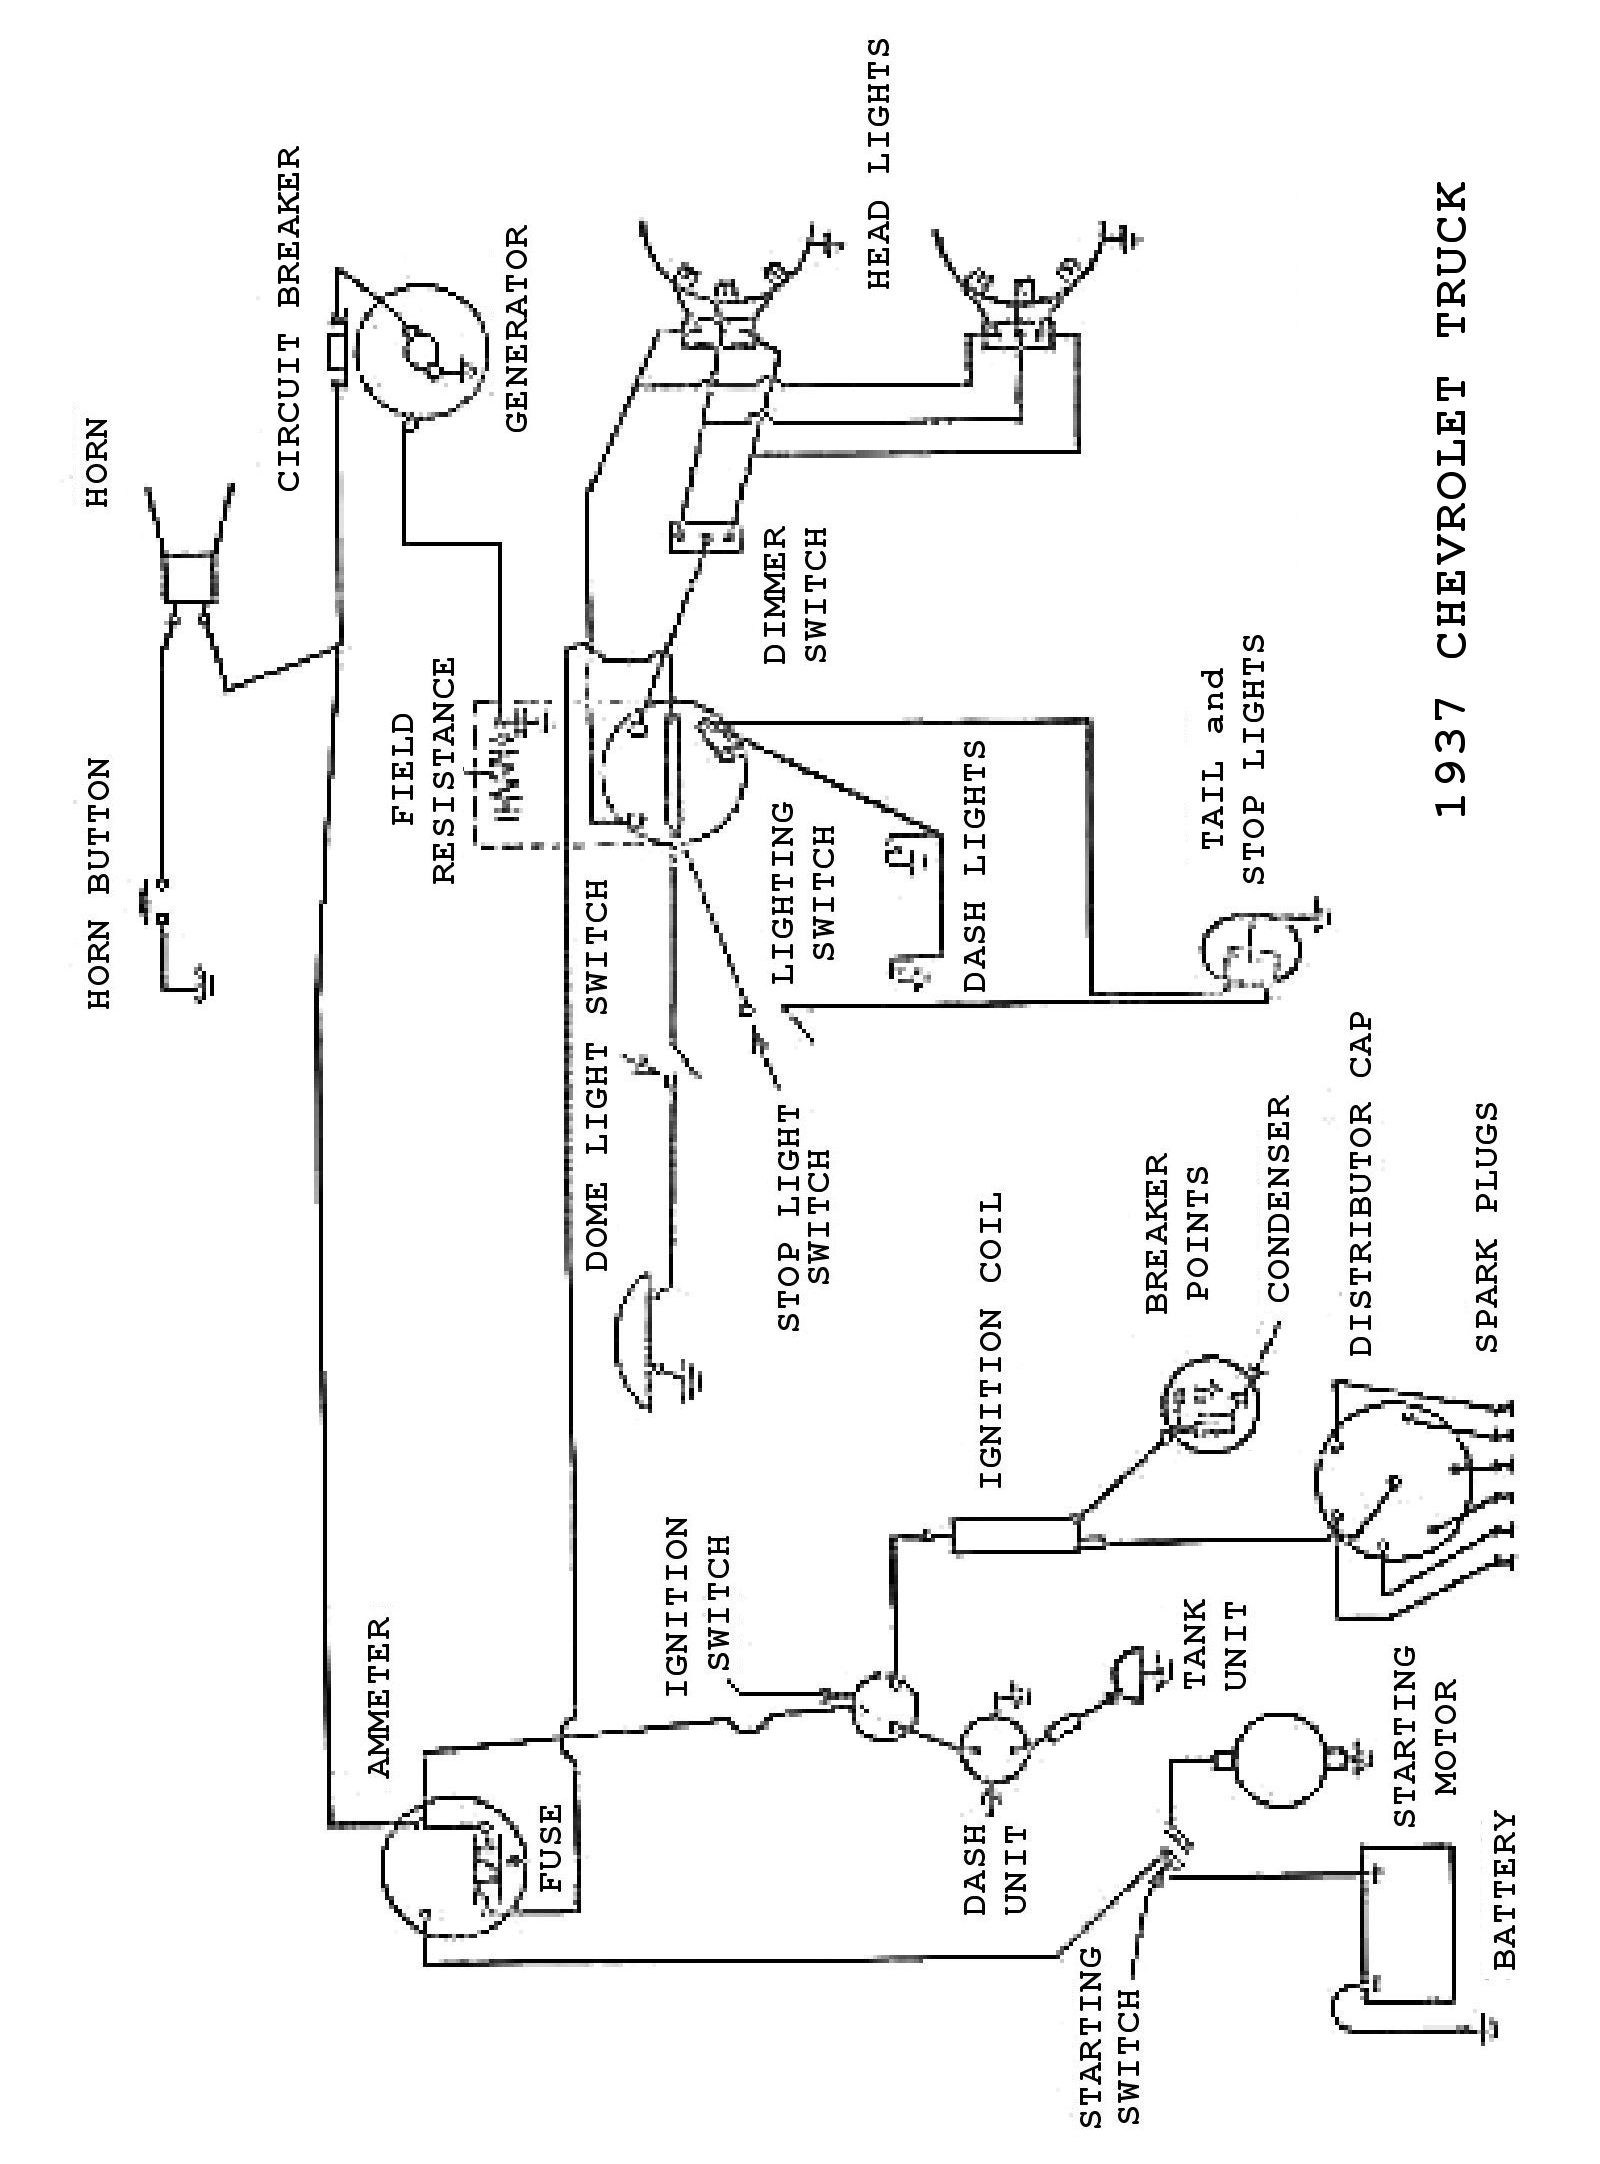 37truck chevy wiring diagrams 1937 ford wiring diagram at crackthecode.co